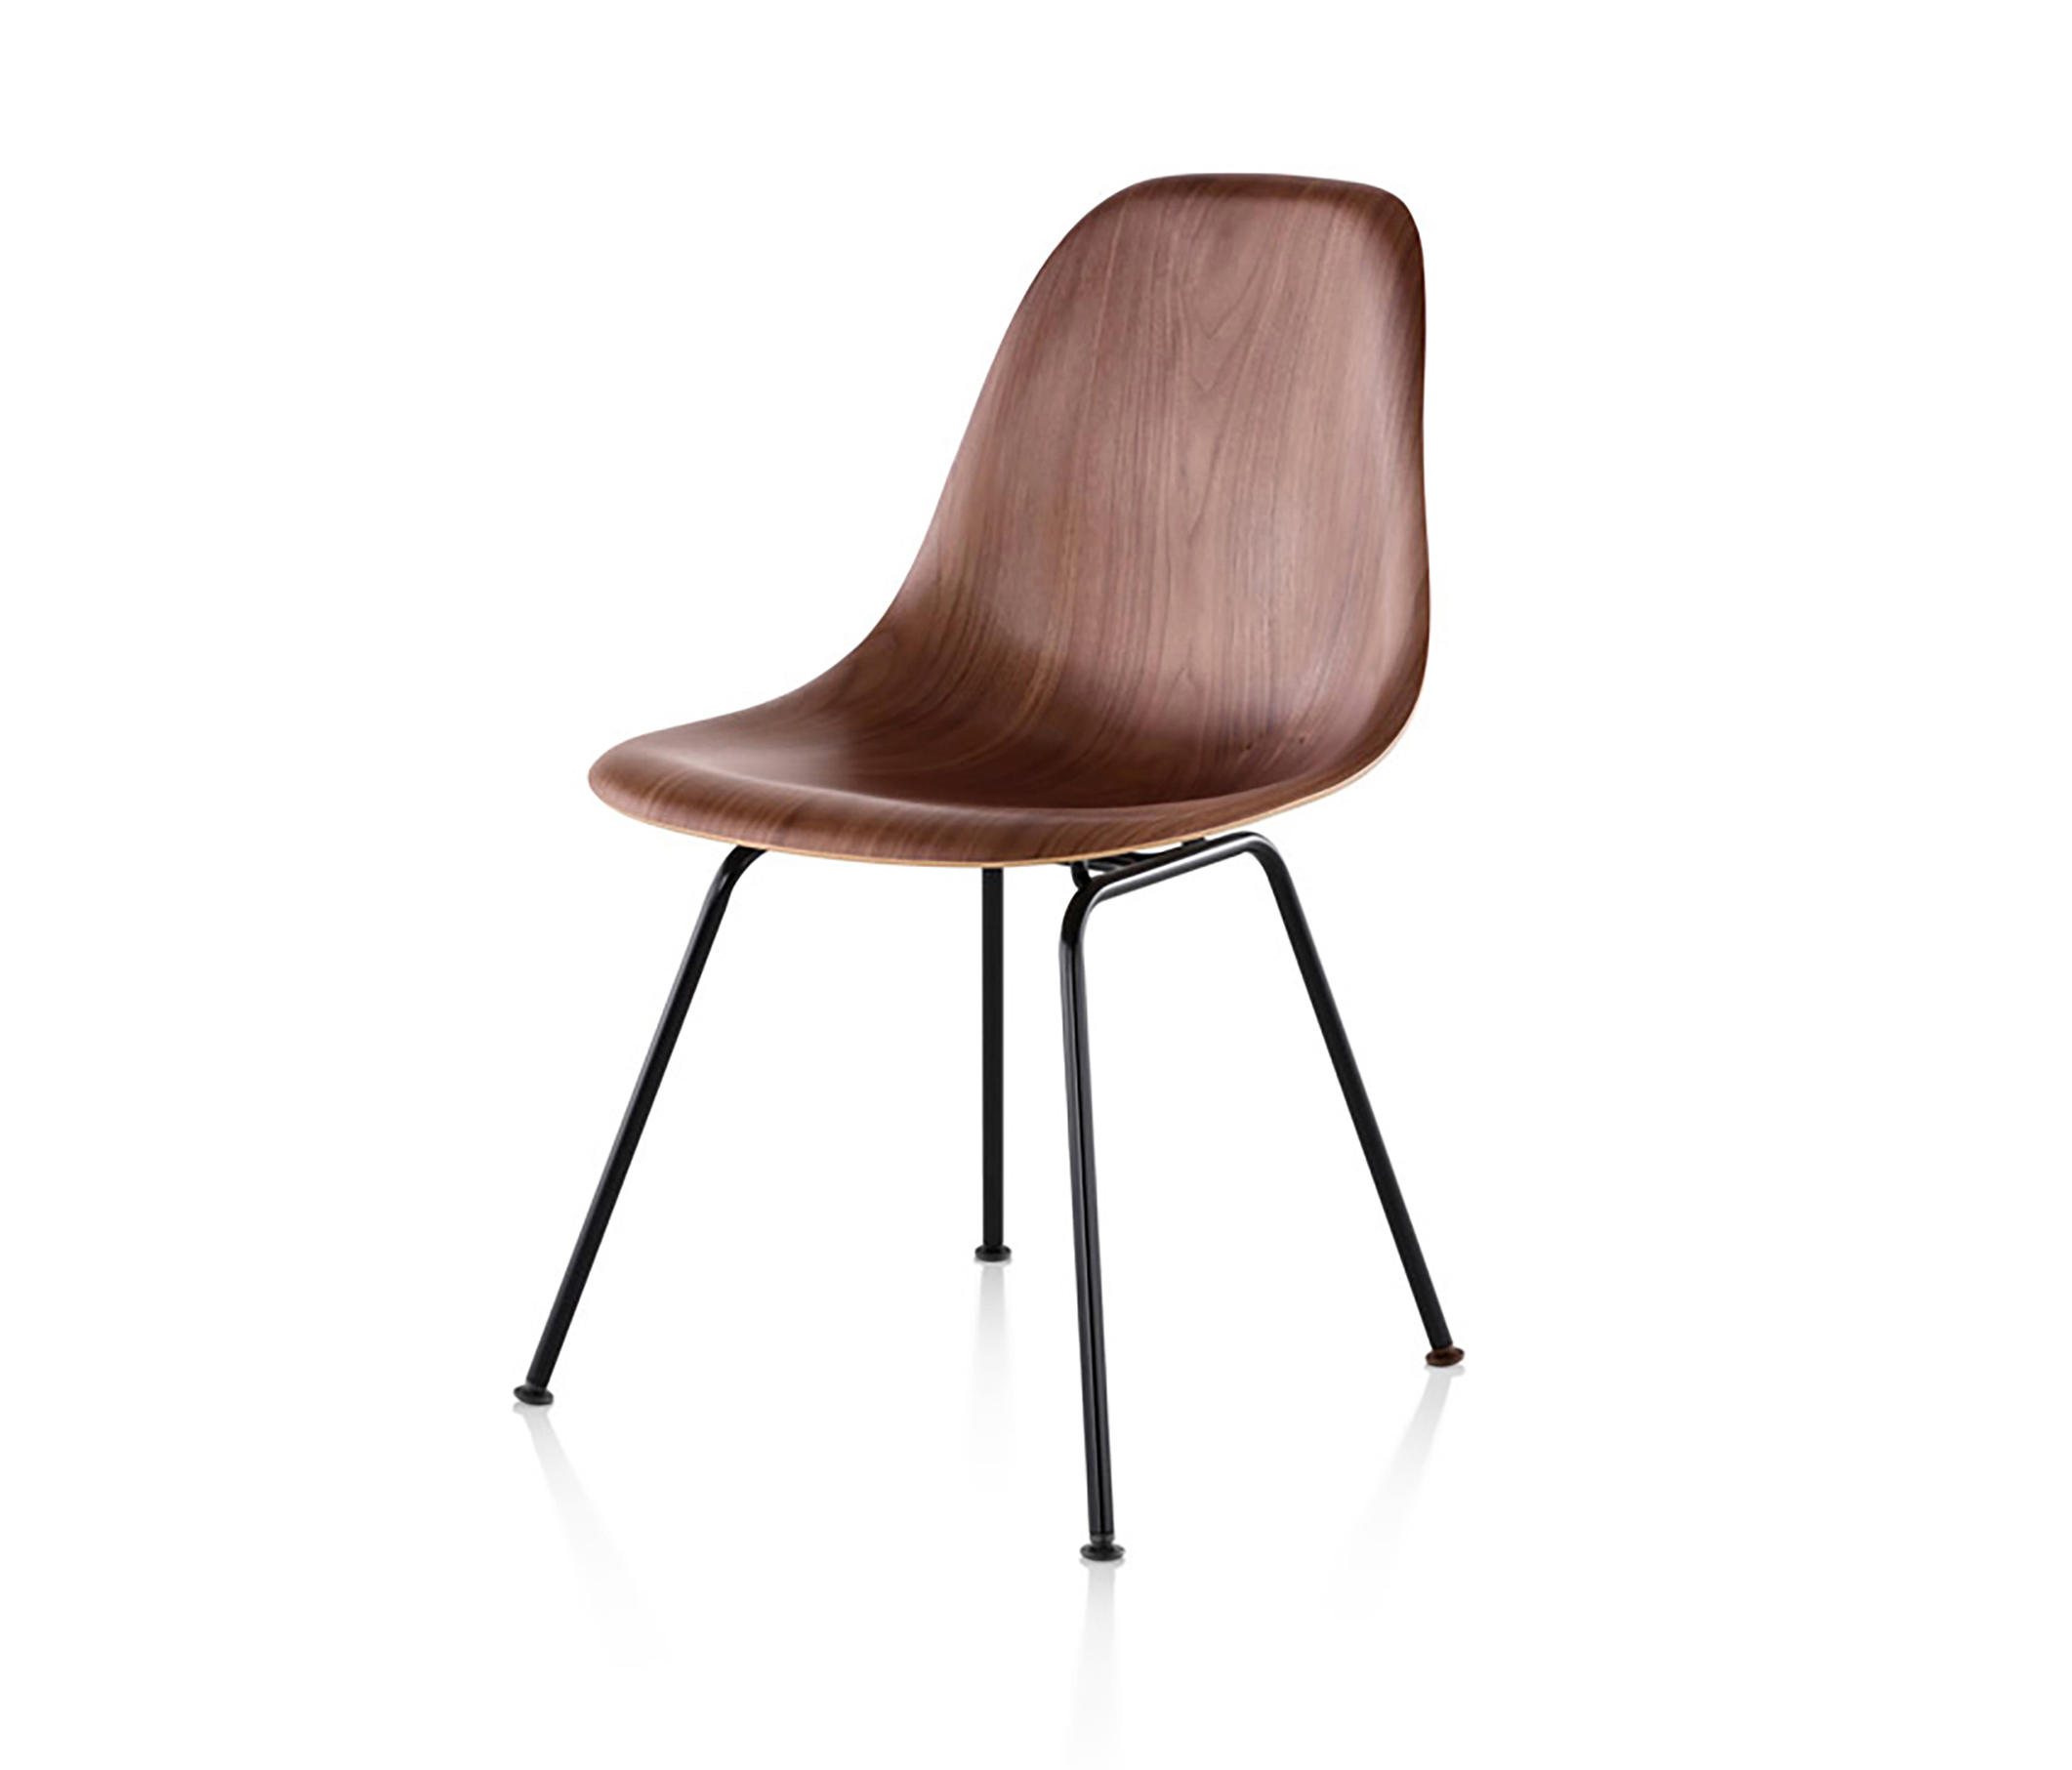 Eames Molded Wood Side Chair Architonic